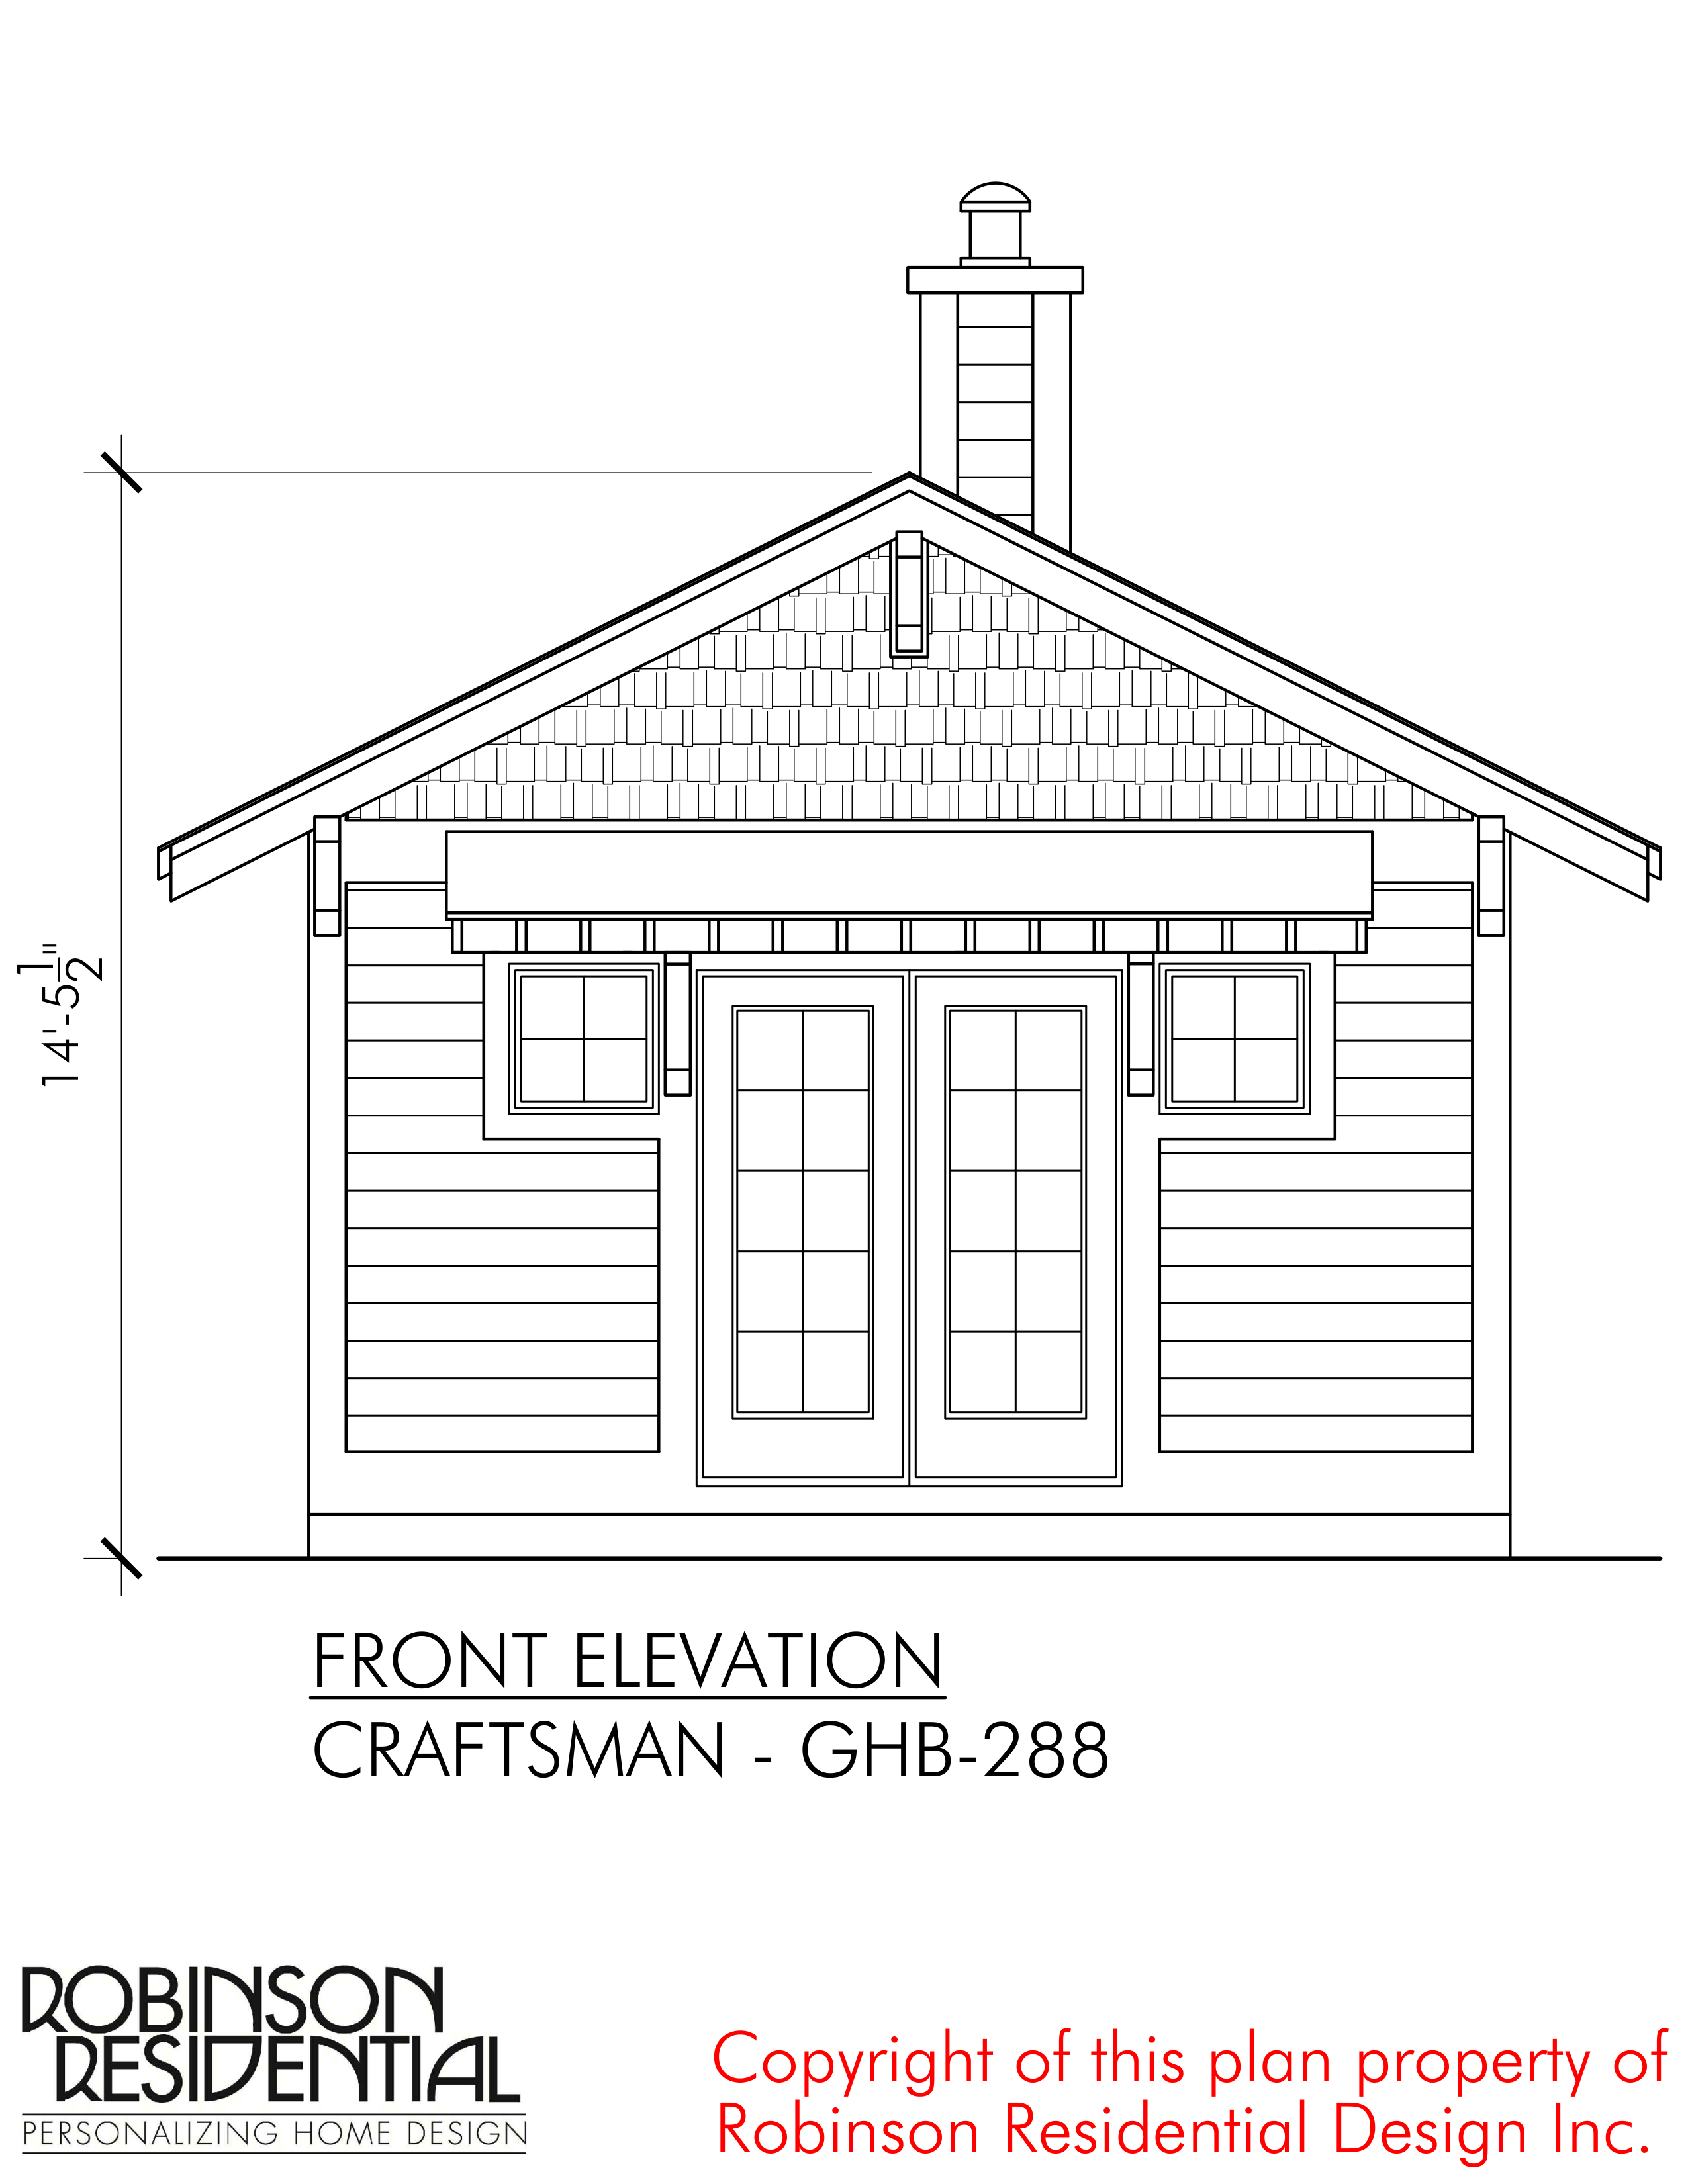 Guest House Front Elevation : Craftsman ghb robinson plans